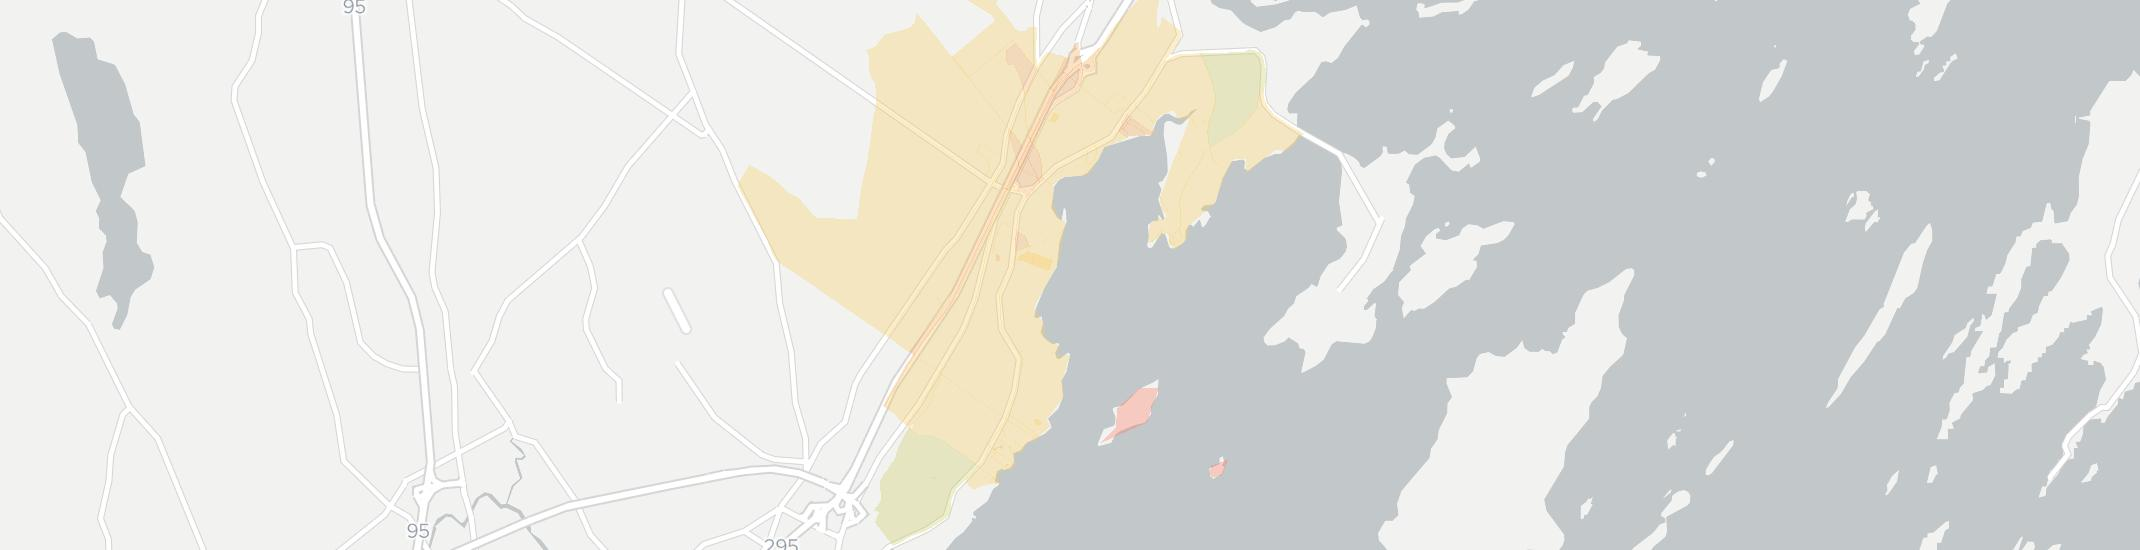 Cumberland Foreside Internet Competition Map. Click for interactive map.